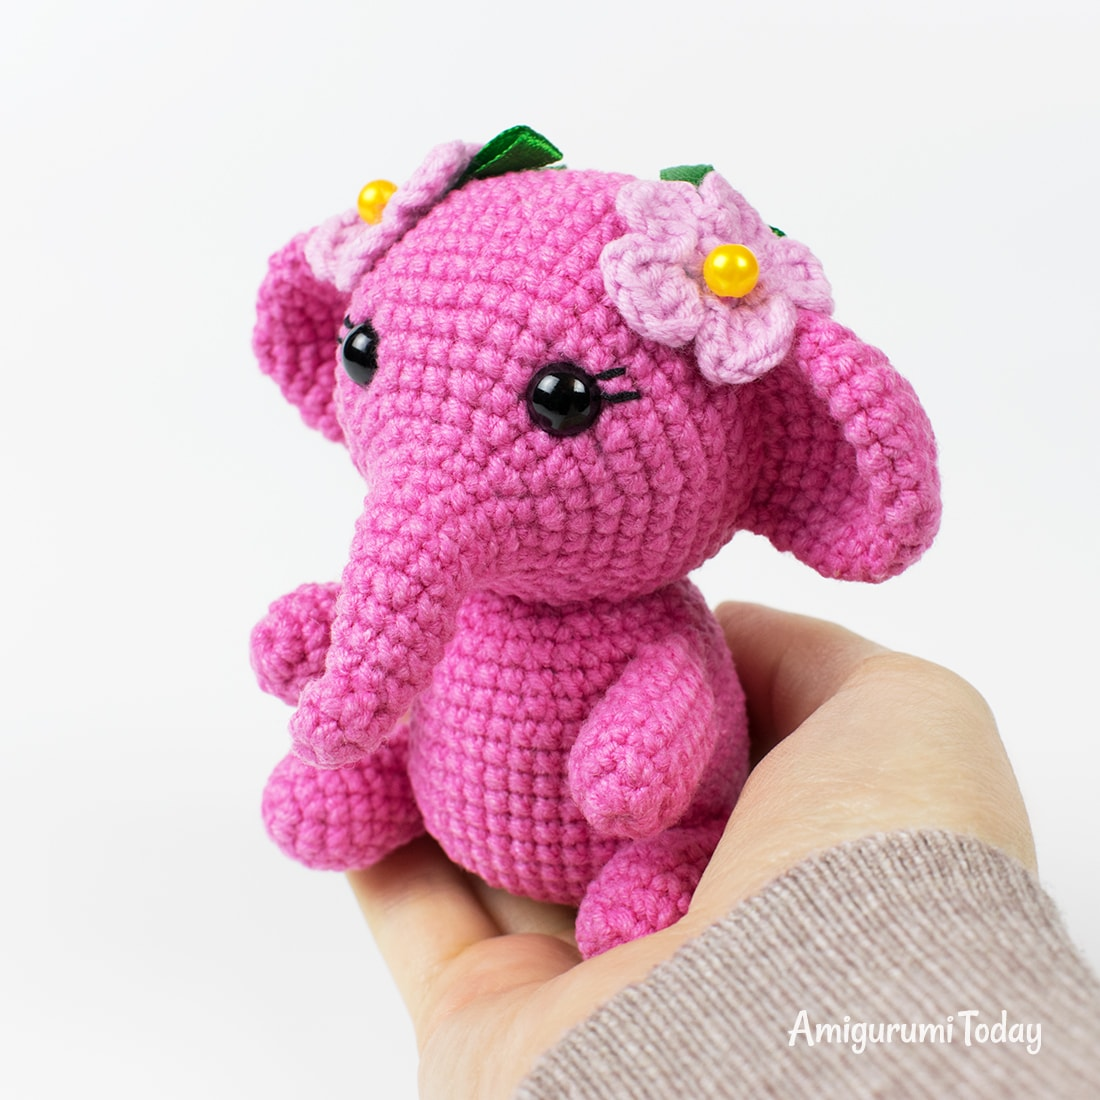 Pink elephant crochet pattern by Amigurumi Today